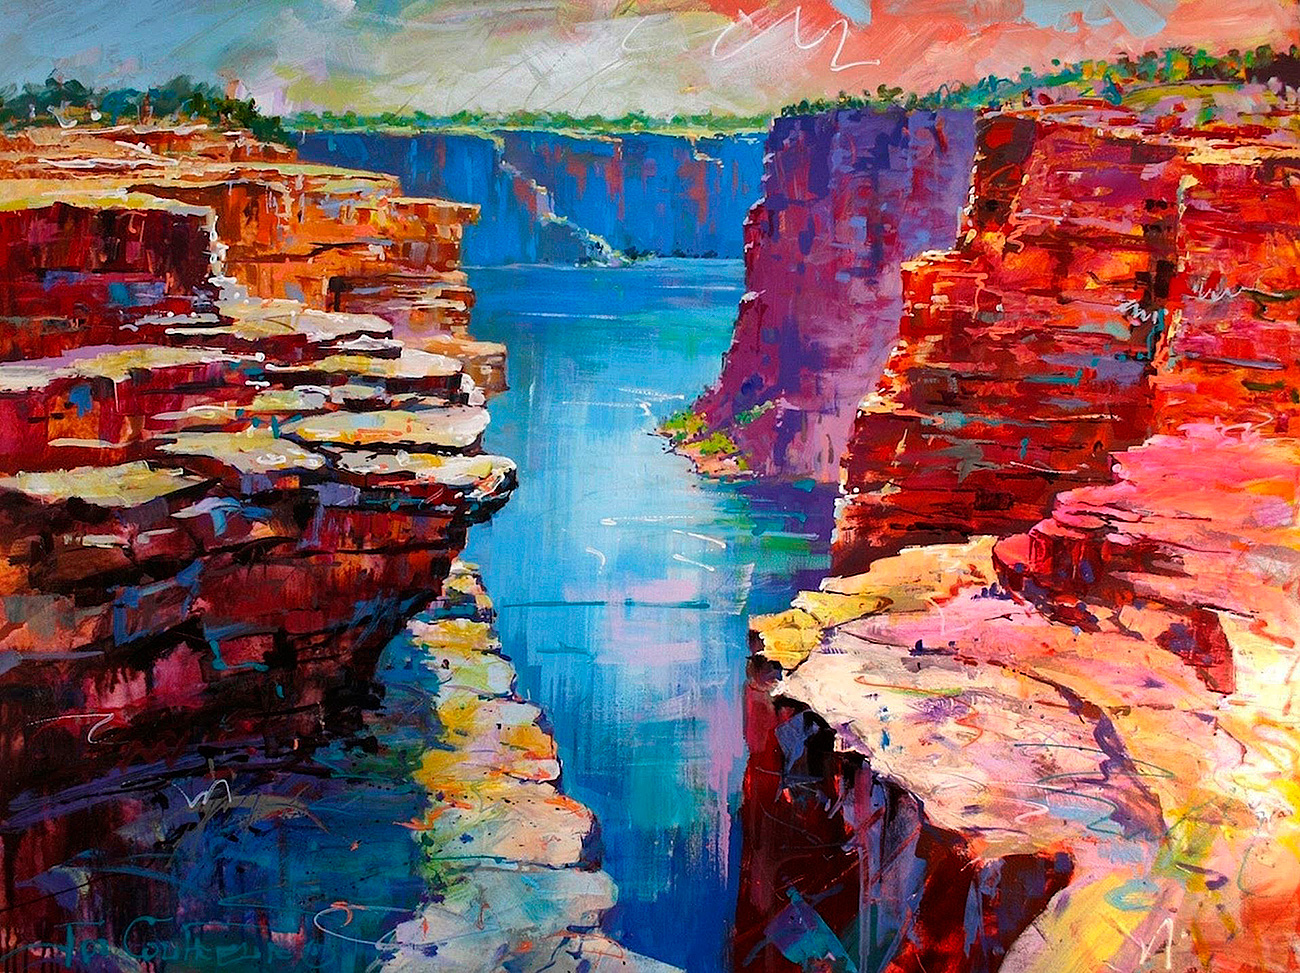 Jos Coufreur - 'King George River'